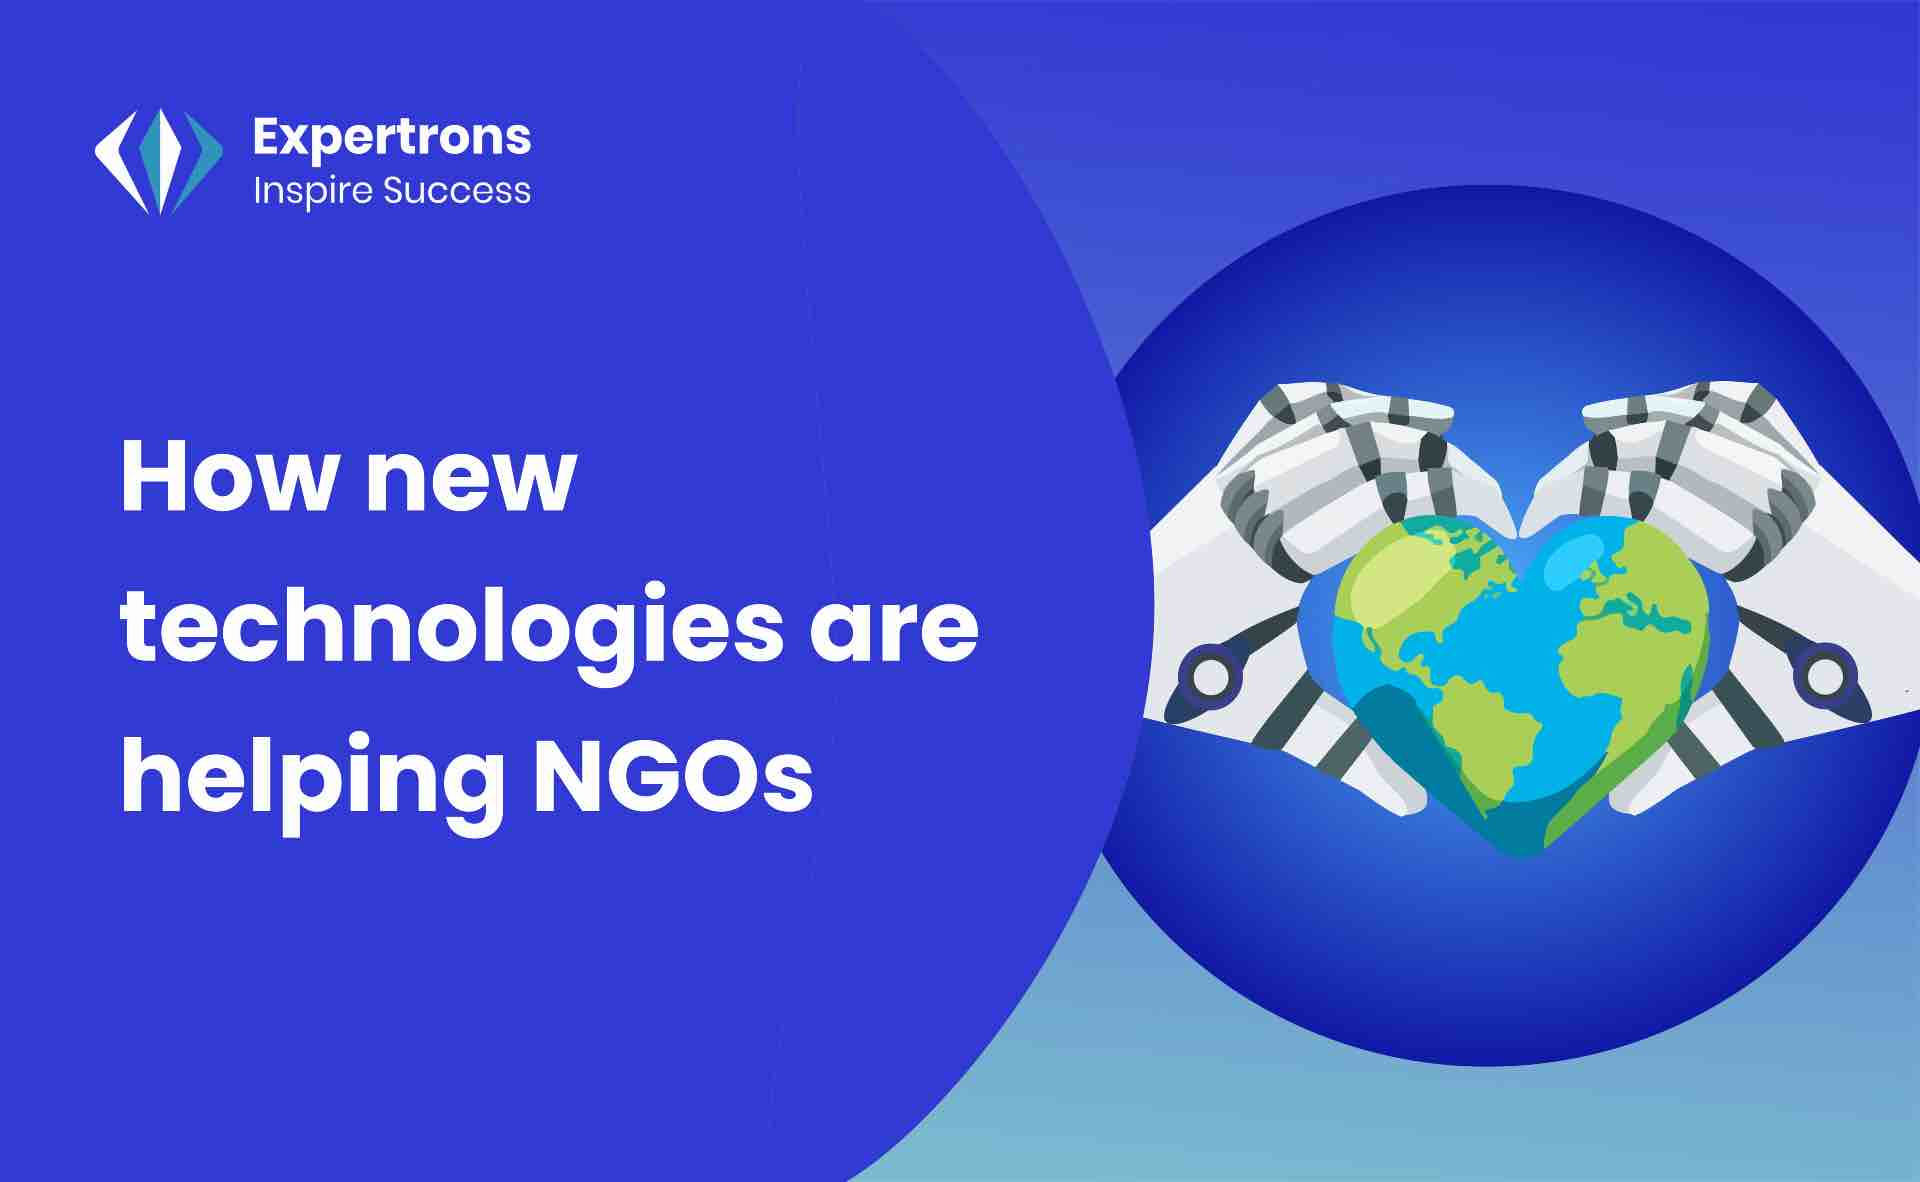 New Age Technology for NGO, Digital Technology, Application of Business, Video Conferencing Technology, Videobot Technology for Communications